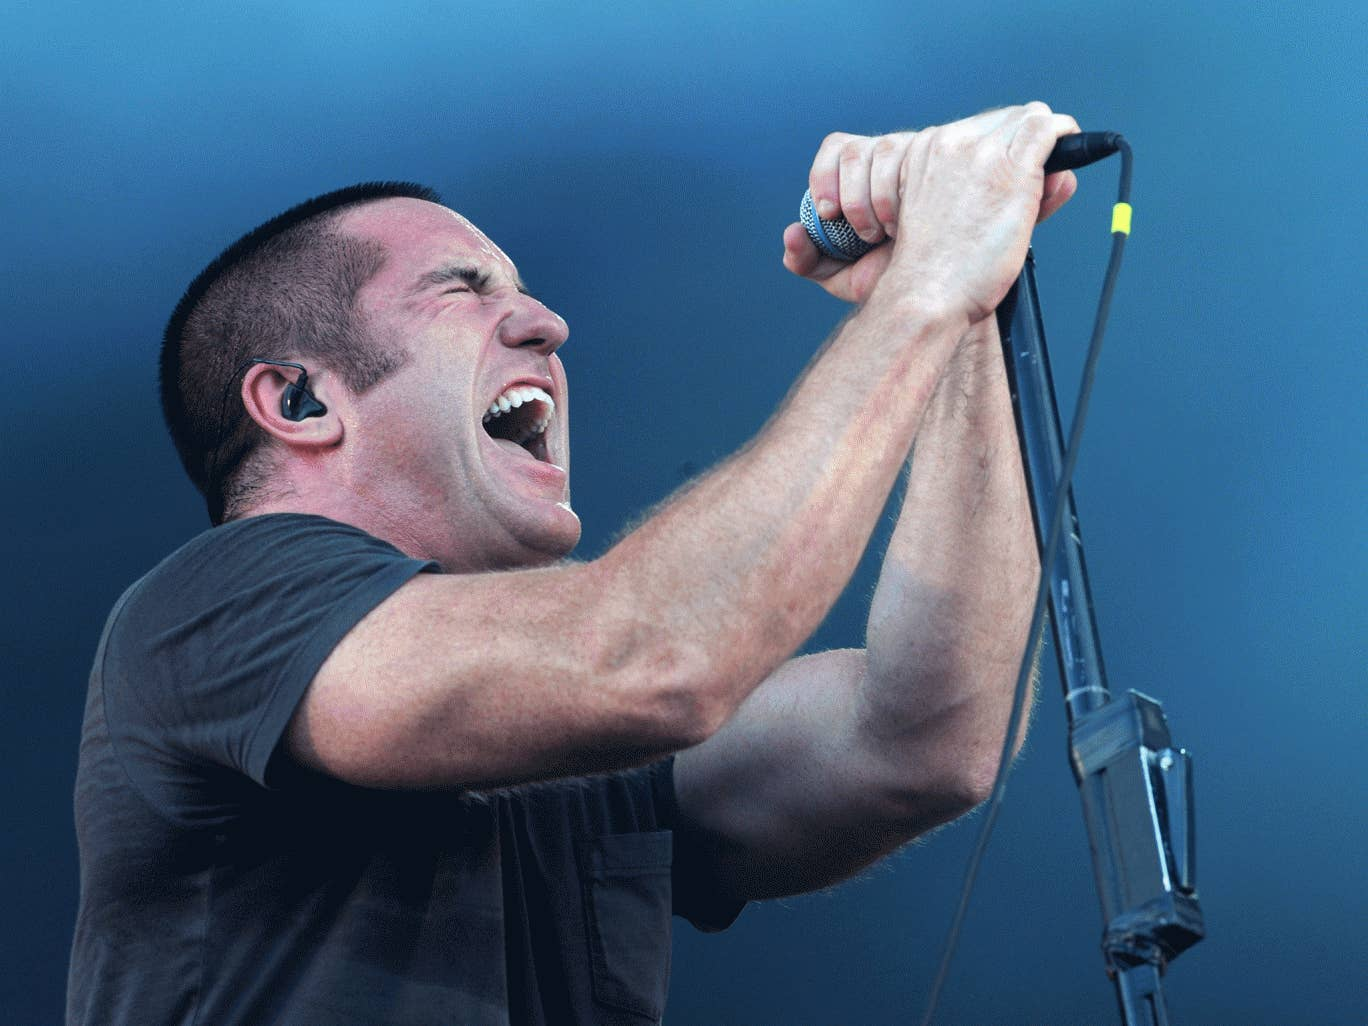 Trent Reznor of Nine Inch Nails, here seen performing at Sonisphere Festival in 2009